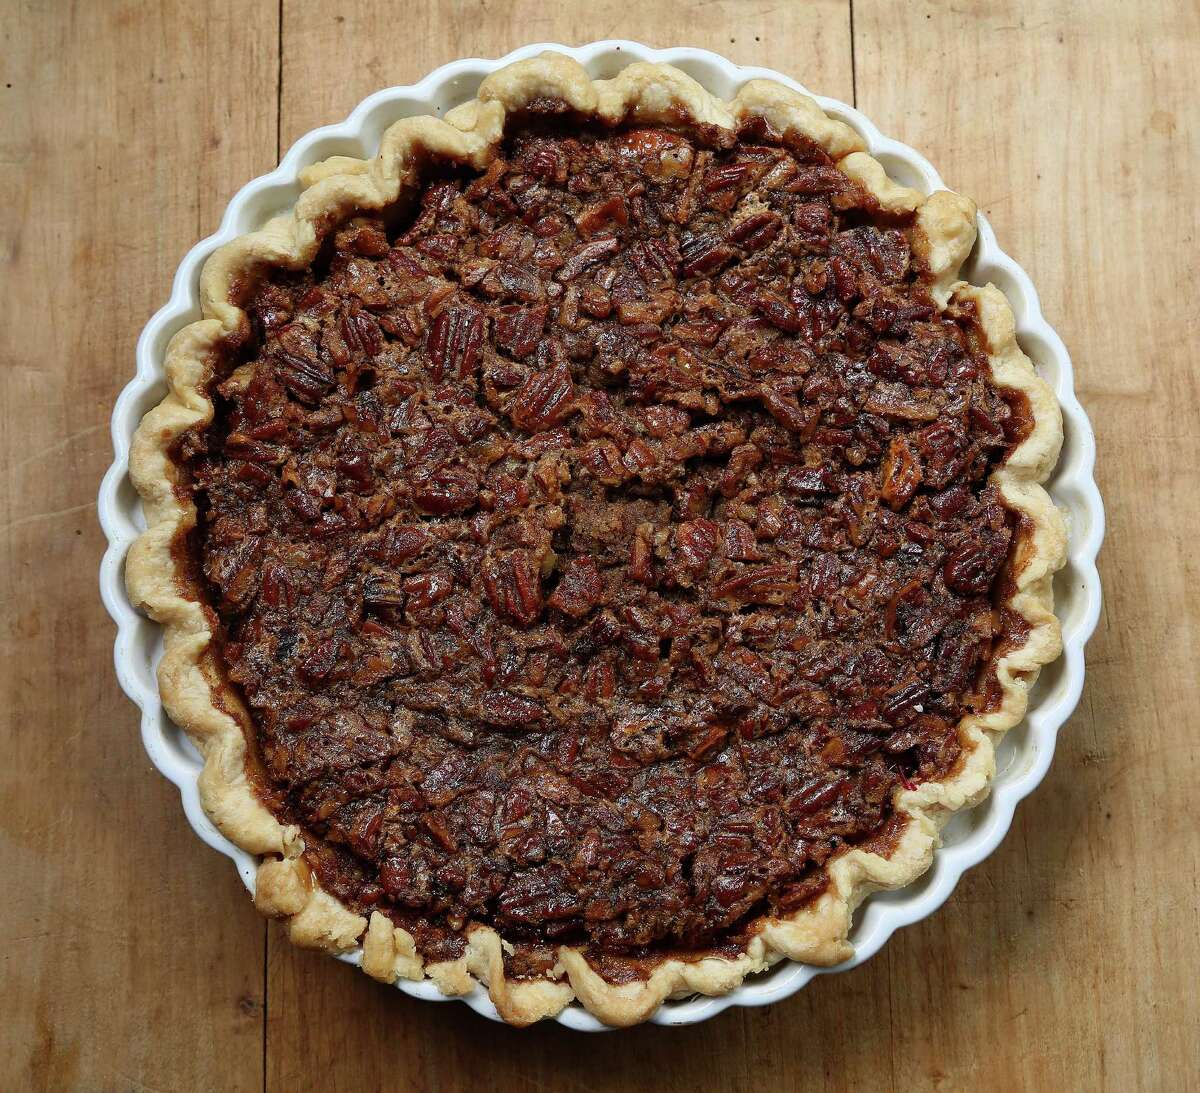 Sweet Potato Pecan Pie With Bourbon Sauce from Della Sellers.